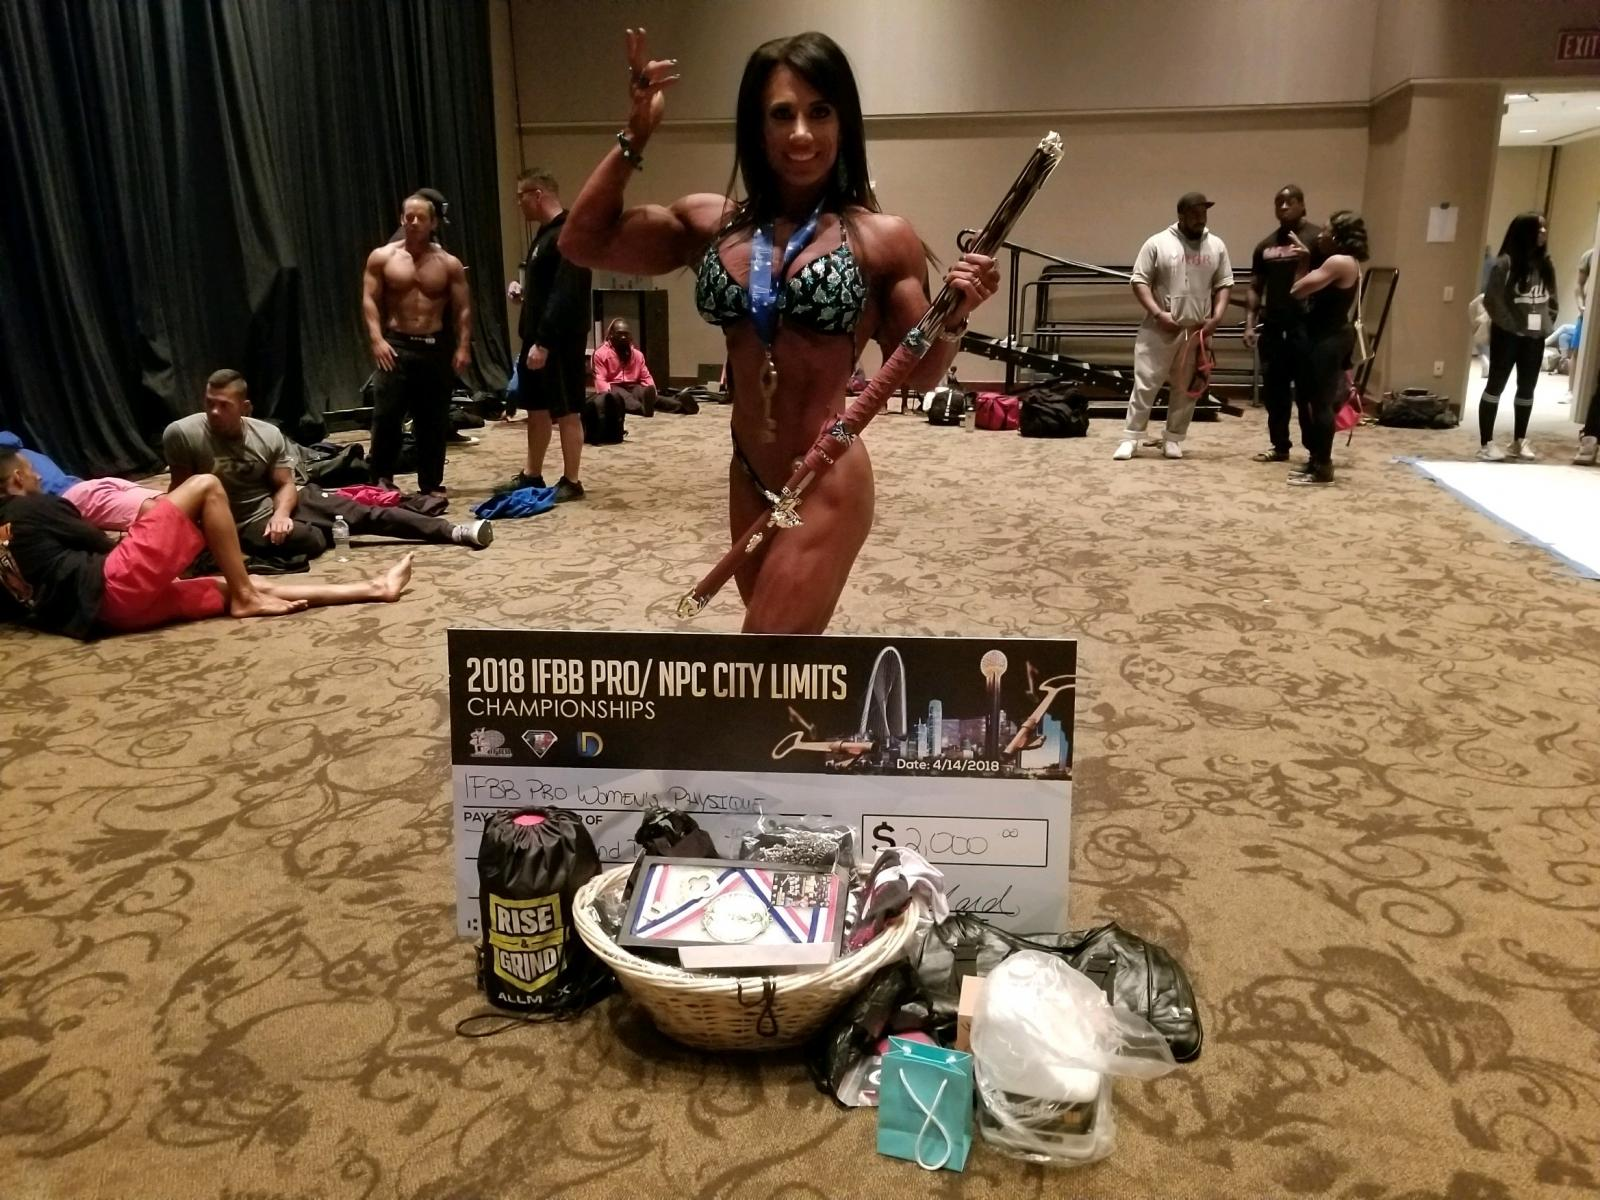 Melissa Pearo at the 2018 IFBB PRO/NPC City Limits Merry Christine Bodywear Women's Physique competition suit